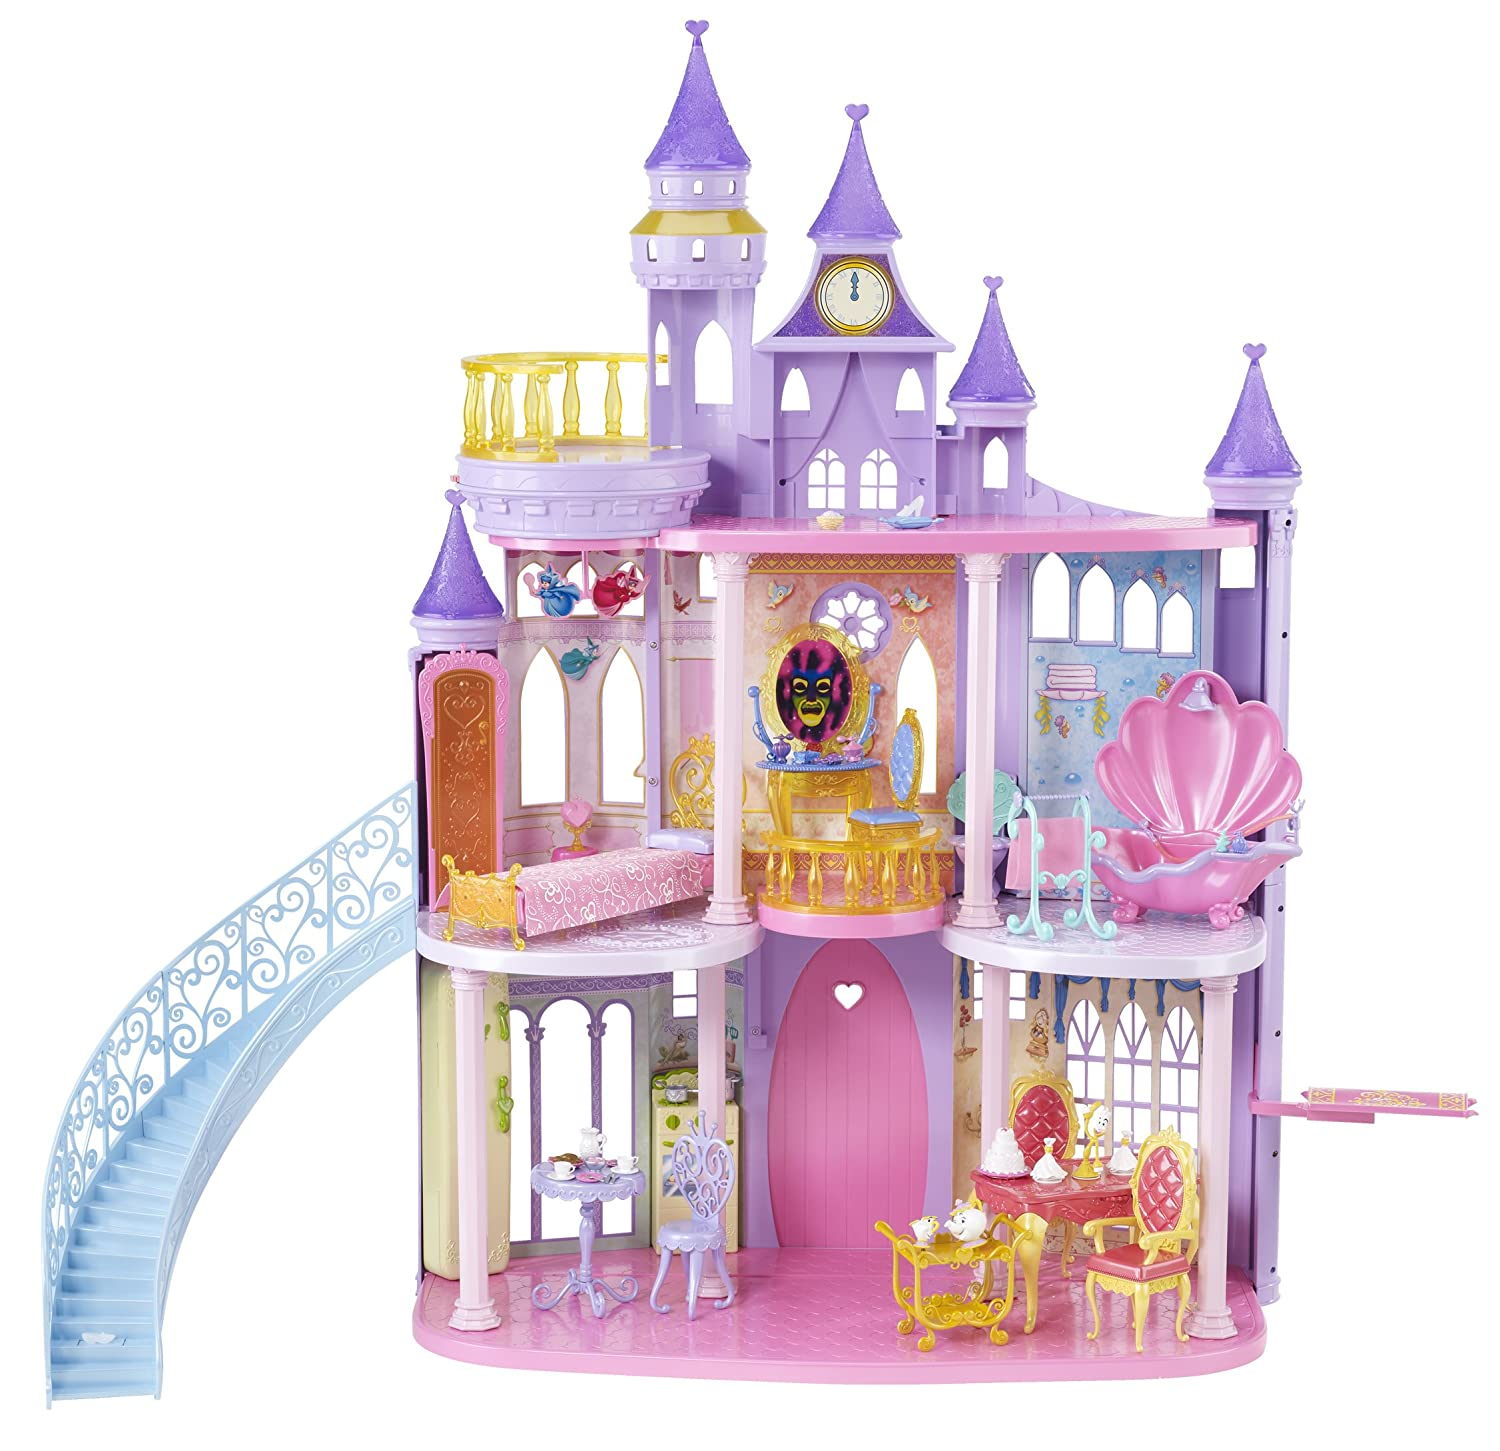 costco kitchen play set wall units disney princess castle dollhouse – fel7.com